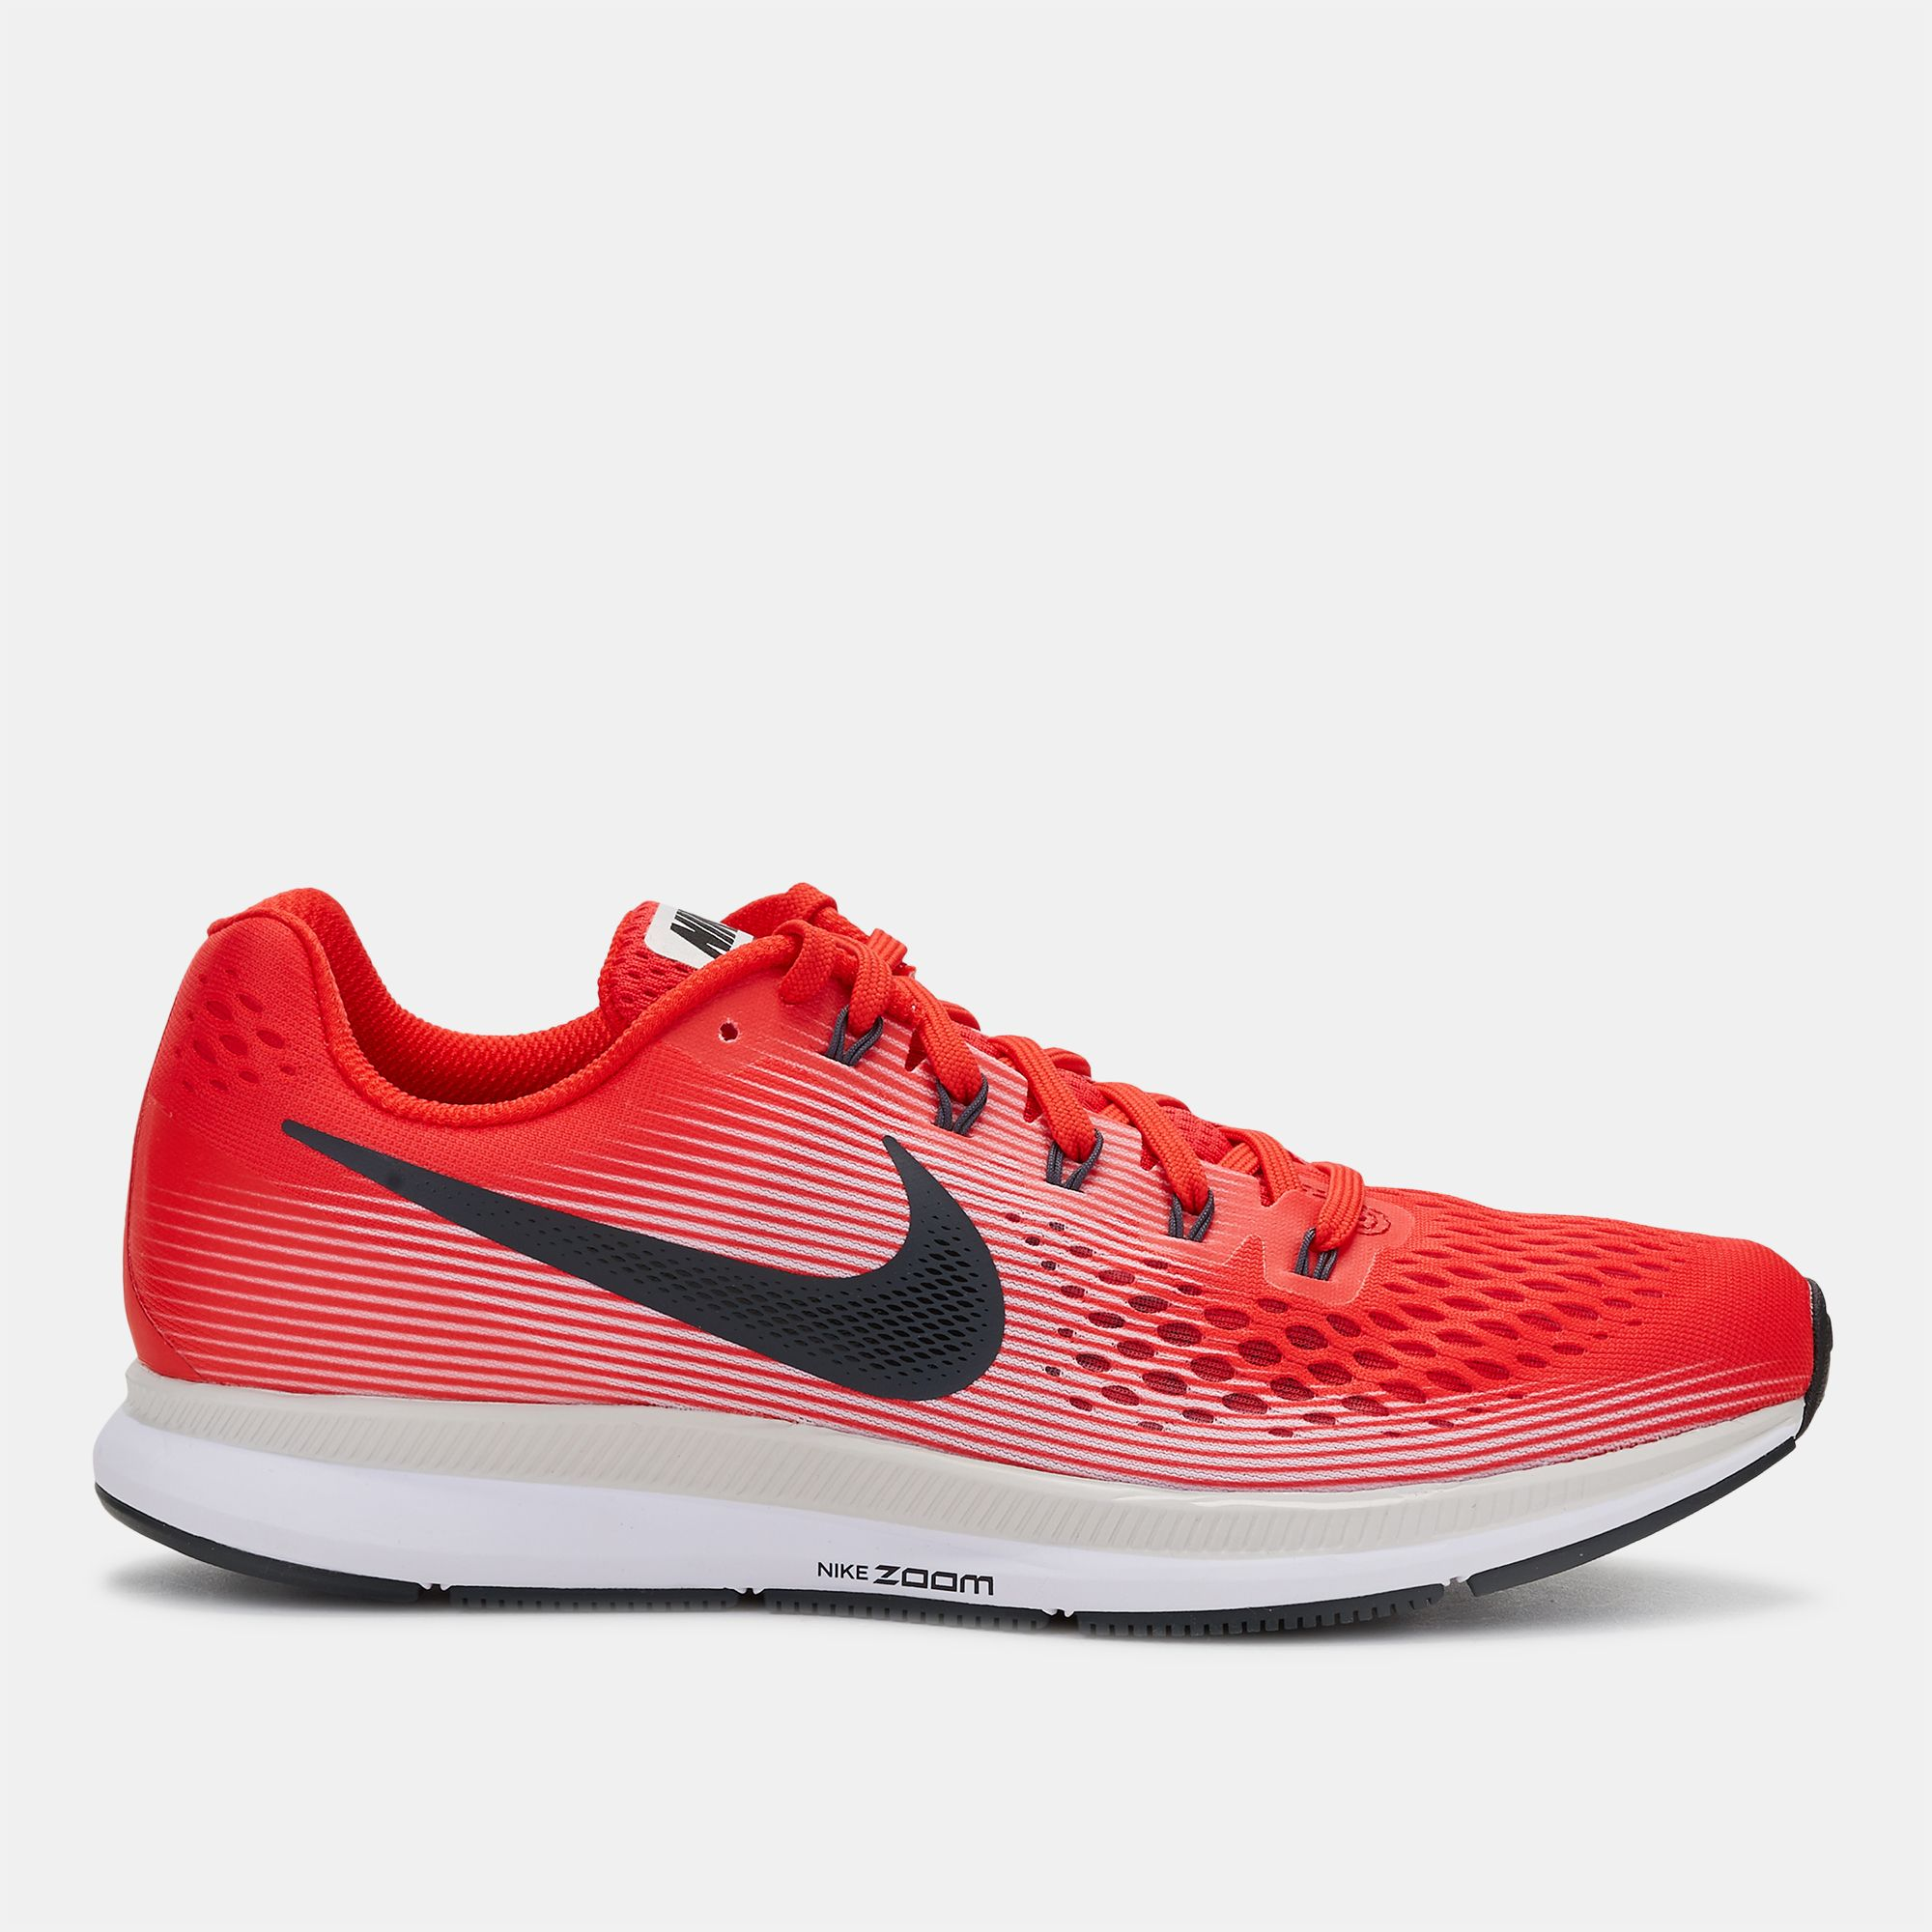 ... red jade 07b58 223fe aliexpress nike air zoom pegasus 34 shoe 461be  8b76b ... 1dcabbf21